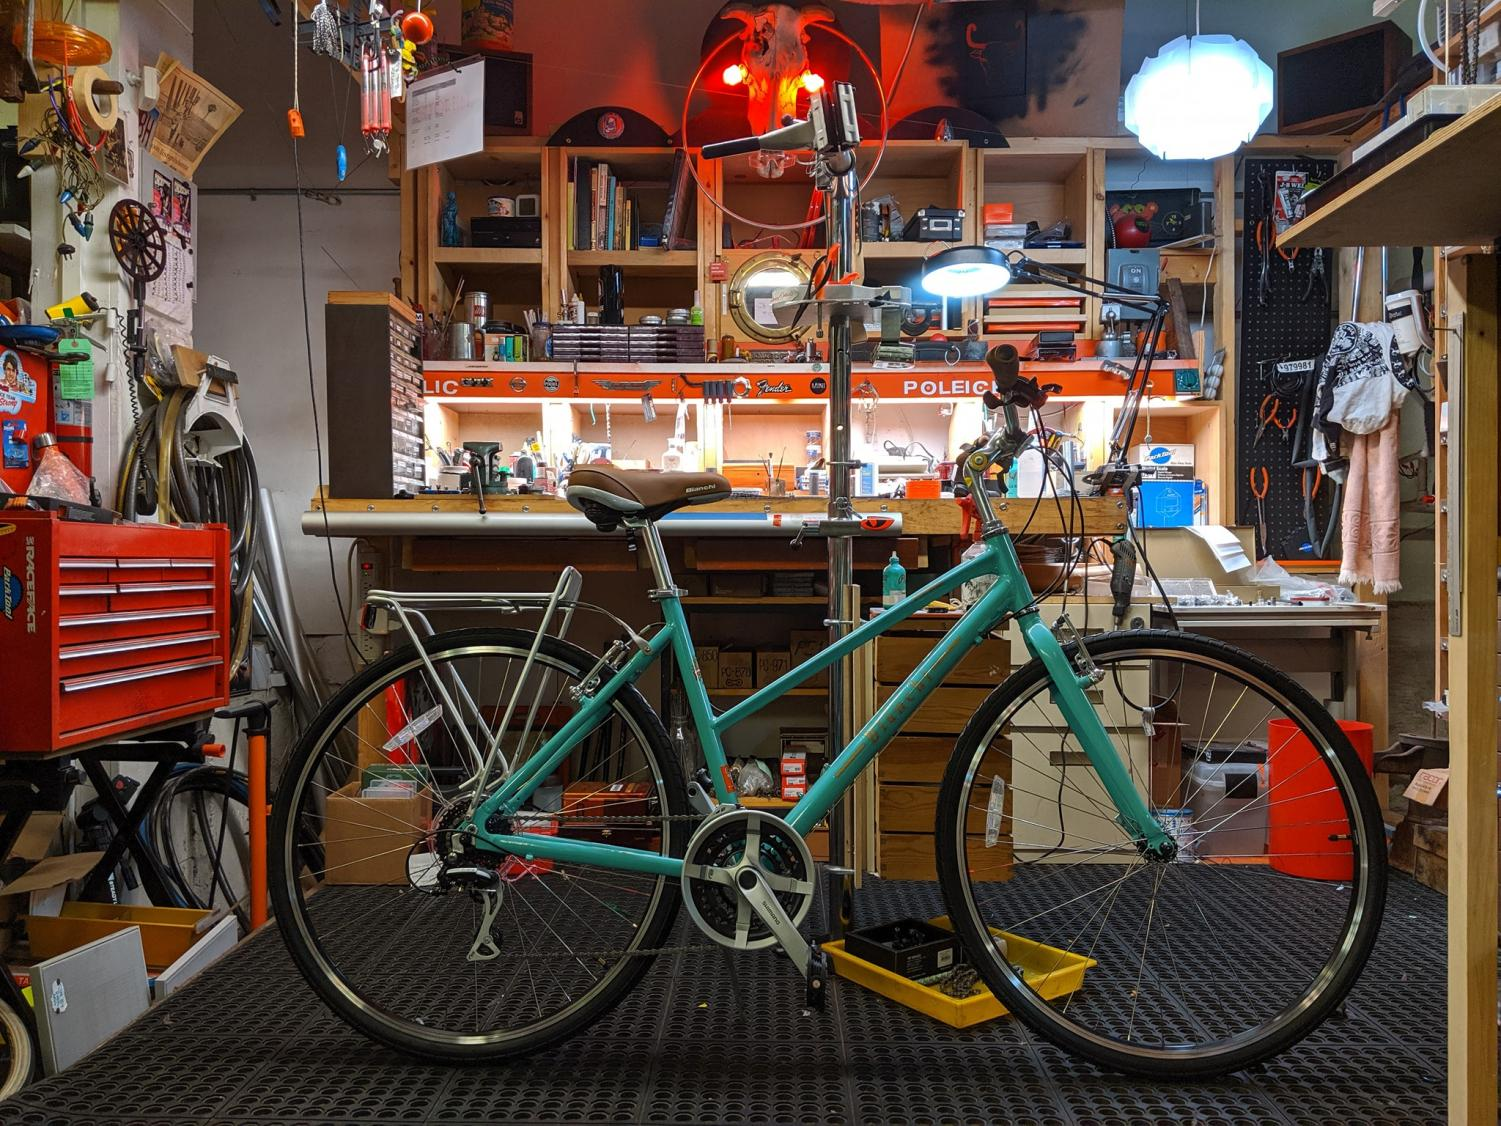 A Bianchi Turismo model sits in Bucephalus Bikes. Run by Alejandro Añón and his wife, Cecelia Wallin, the Lake St. Shop emphasizes car-free living.